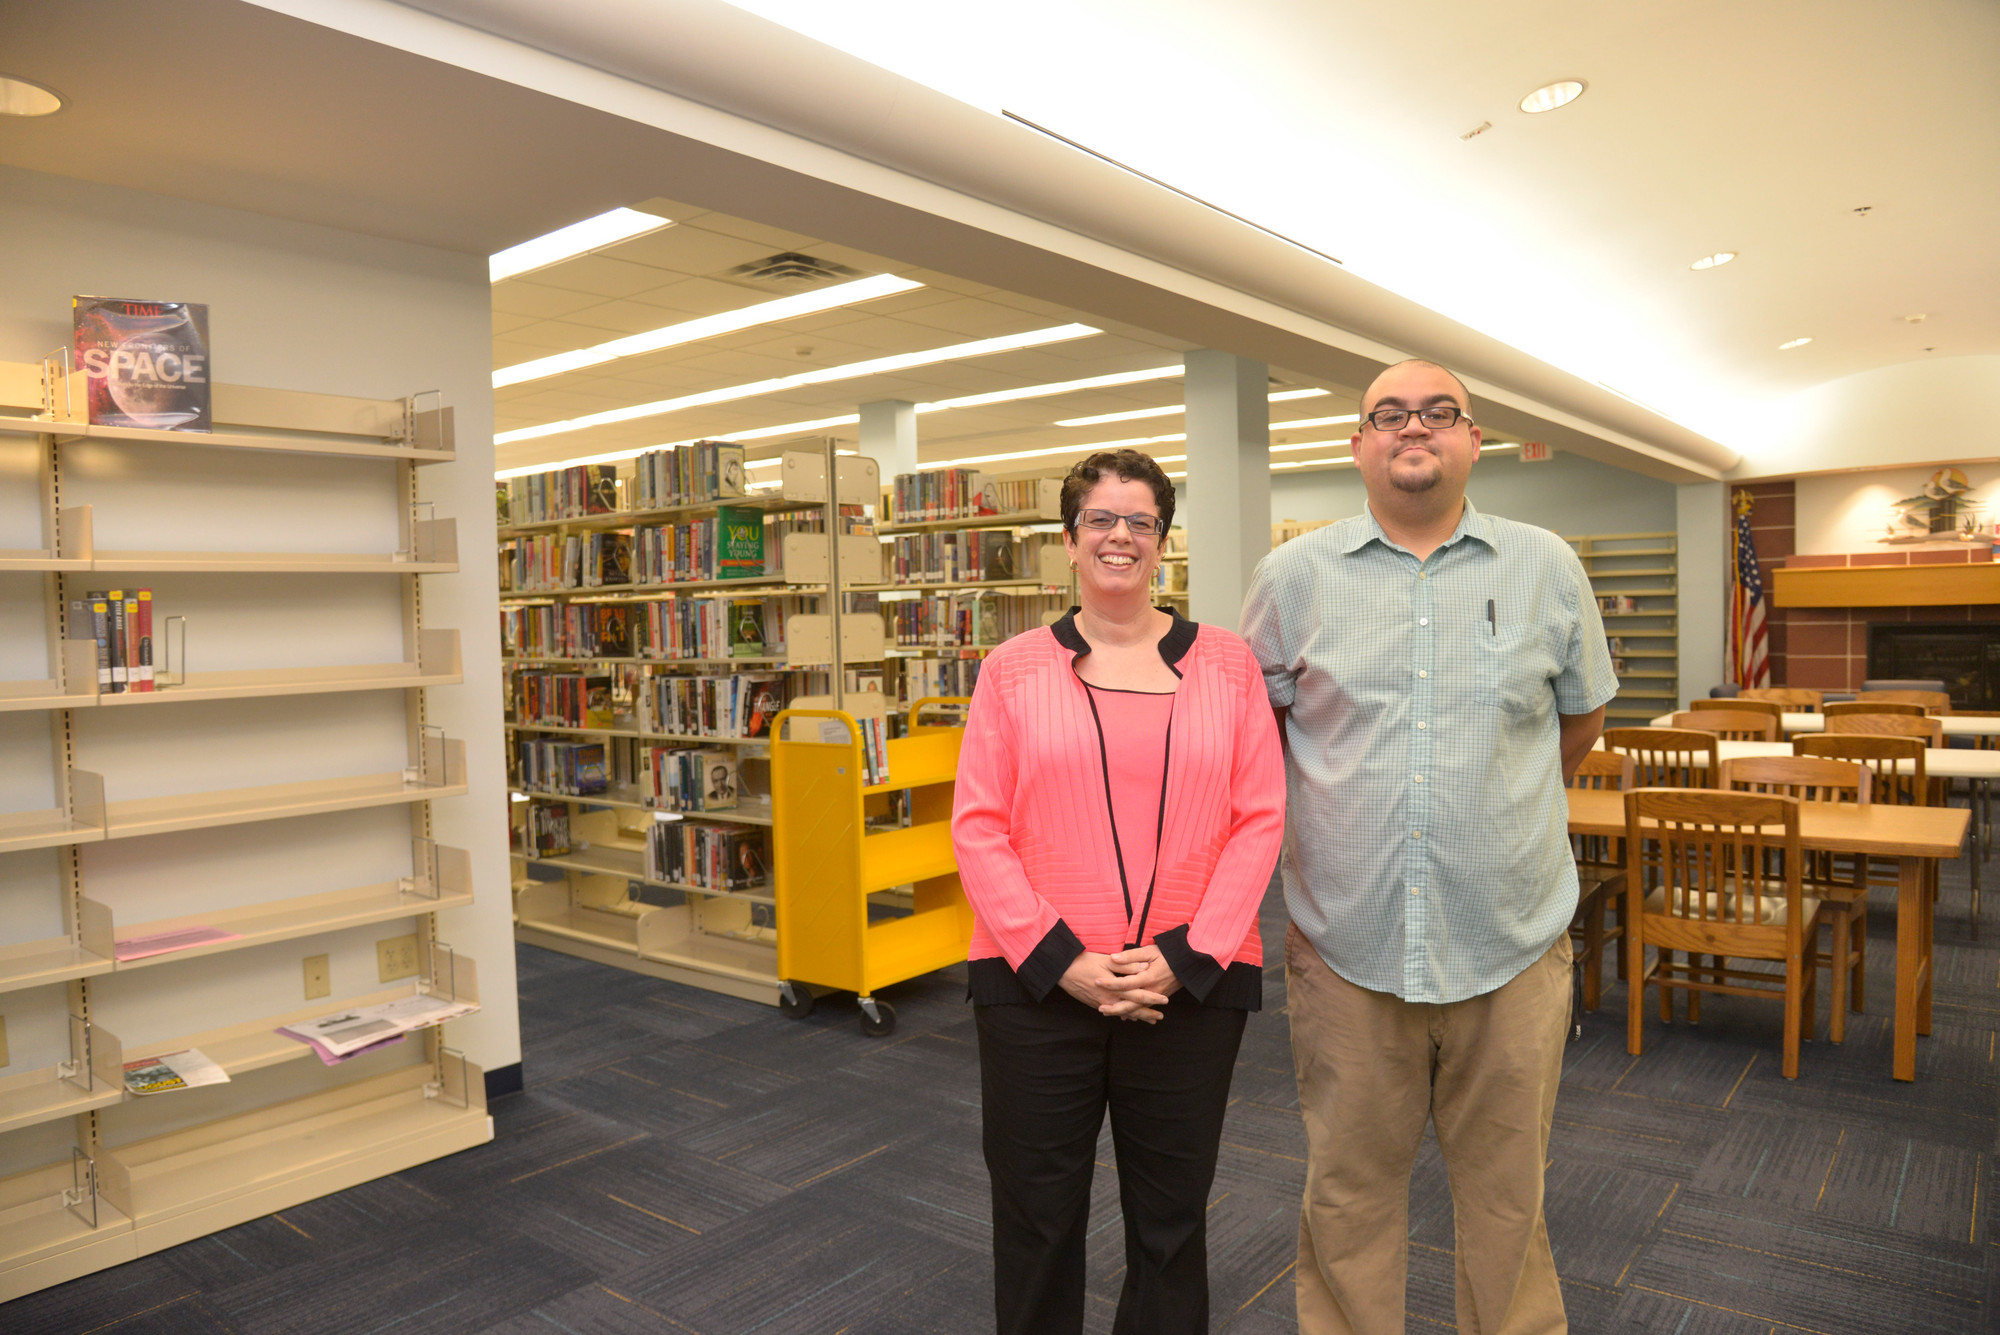 Library director Jessica Koenig and Antonio Cuneo, a library aide  who has worked at Library since he was 16.